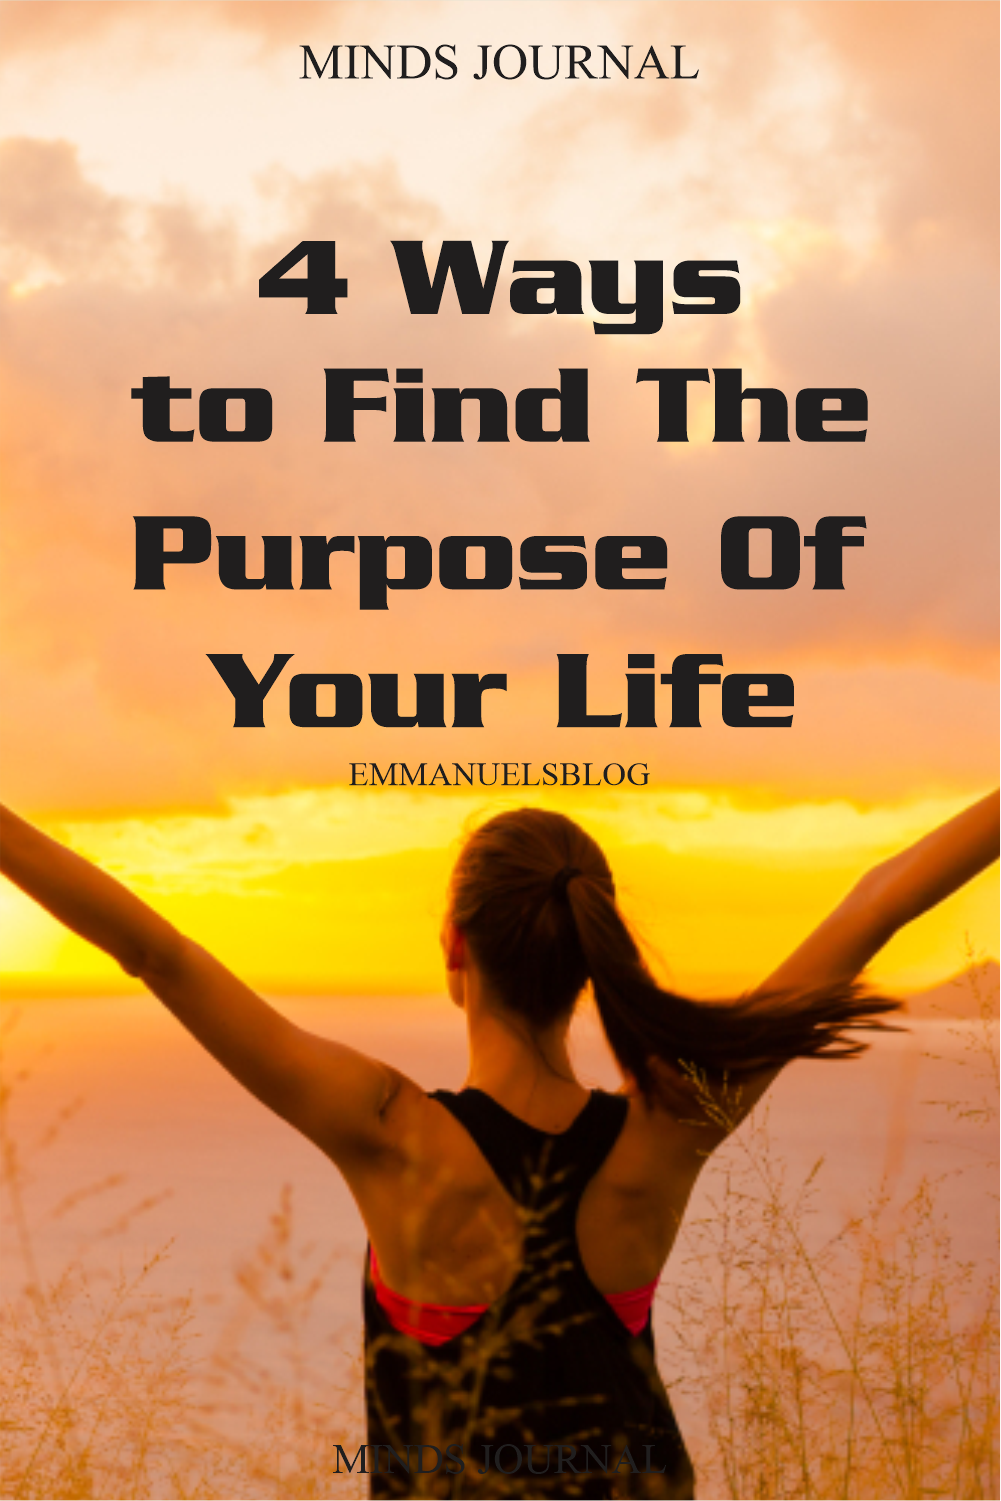 4 Ways to Find The Purpose Of Your Life